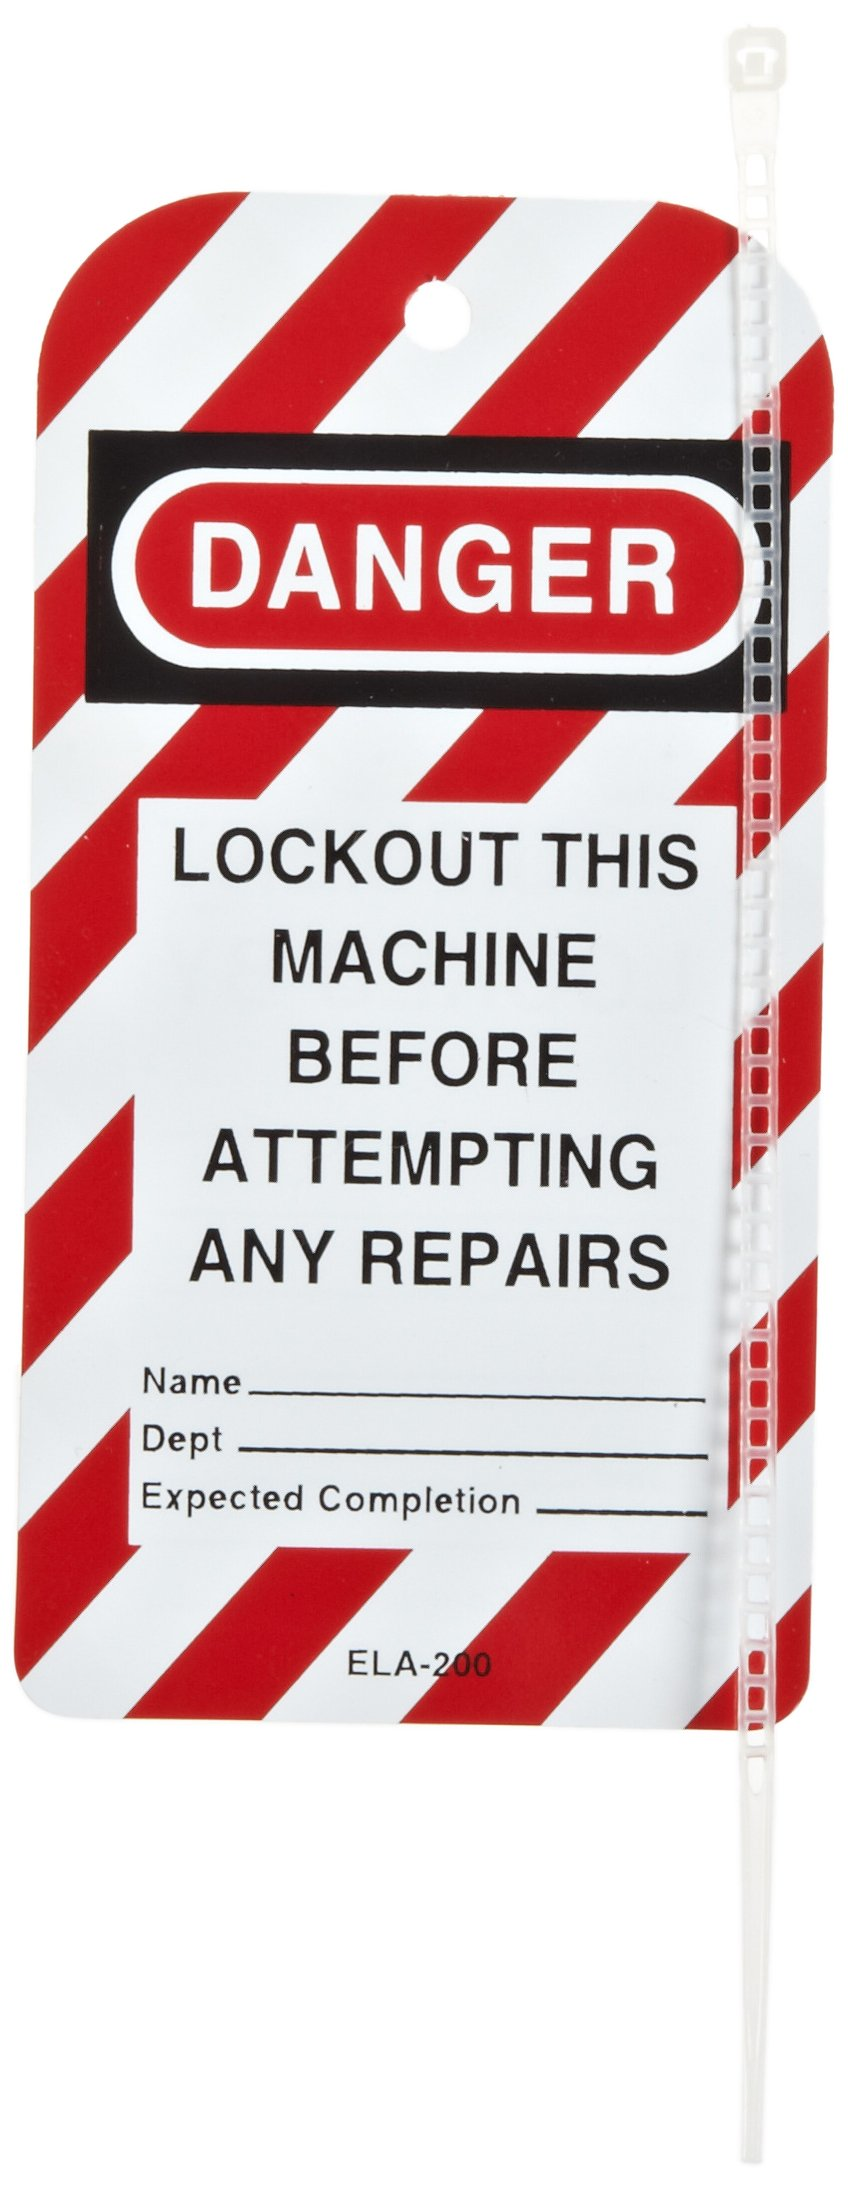 North Safety''Danger - Lockout This Machine Before Attempting Any Repairs'' Styrene Tag with Reverse Side Dismissal Warning, 5-3/4'' Length, 3'' Width